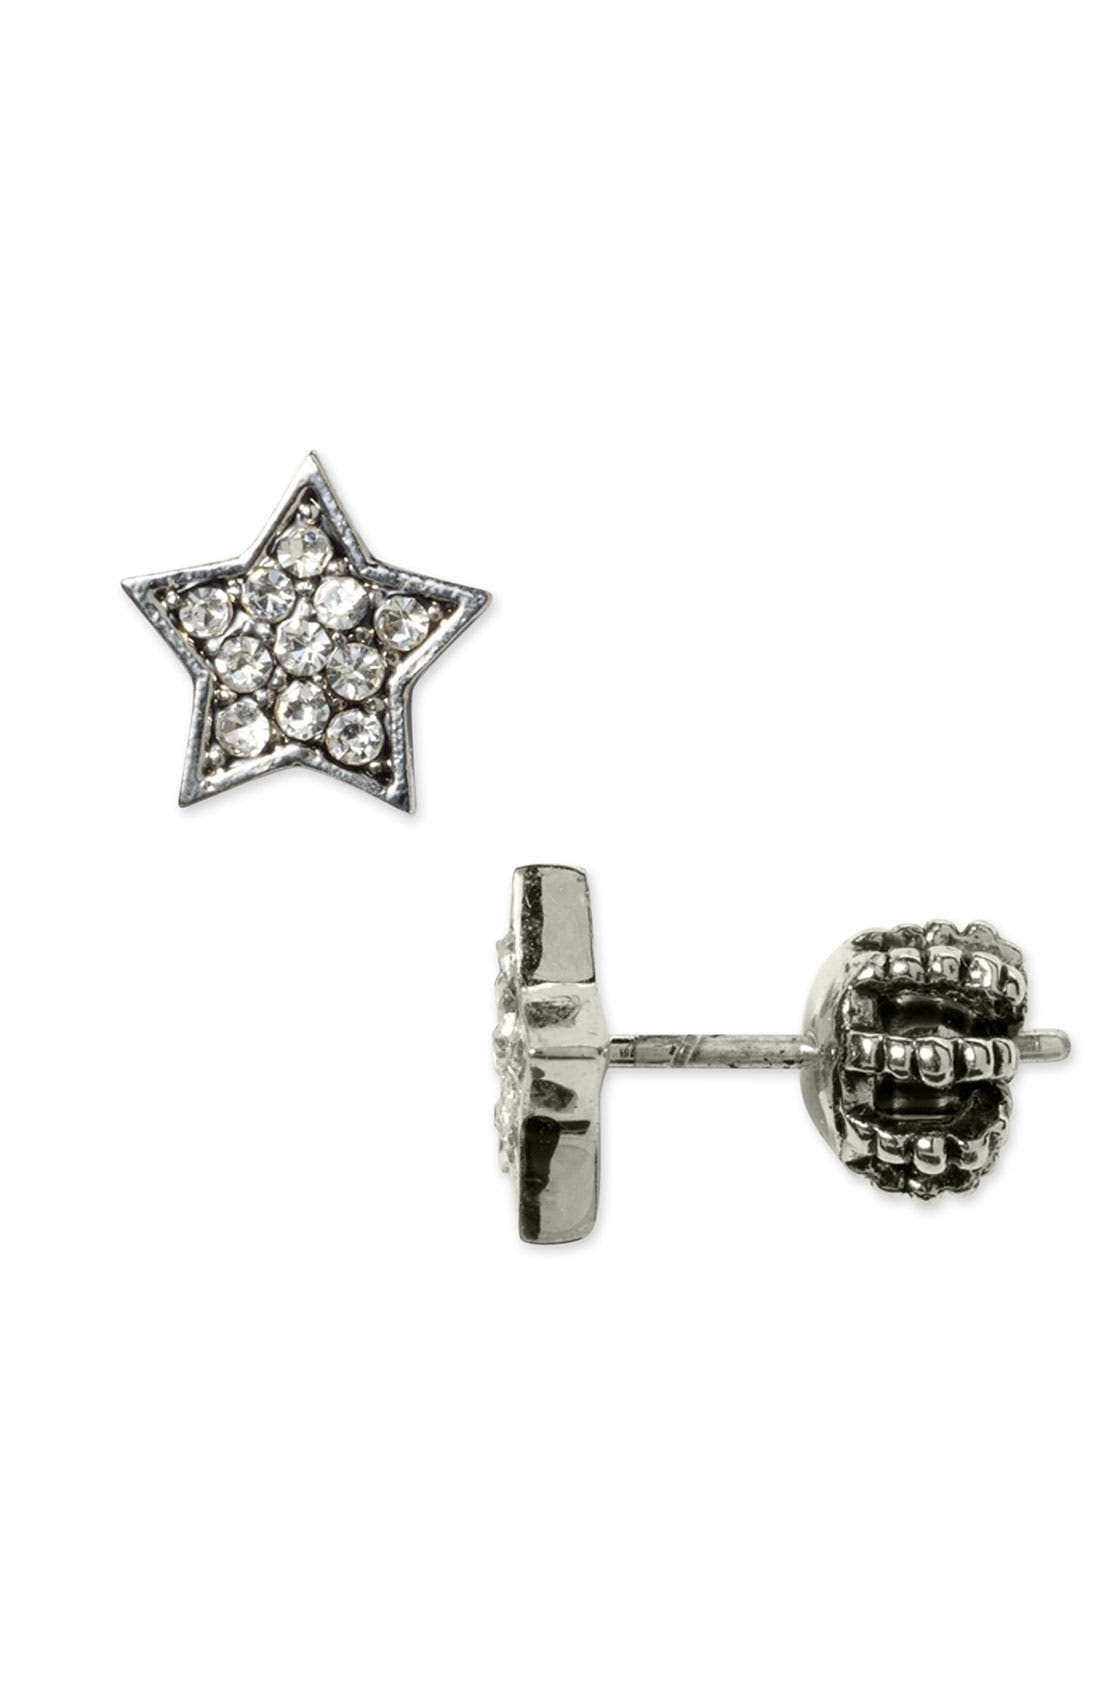 Main Image - Juicy Couture 'Star' Stud Earrings